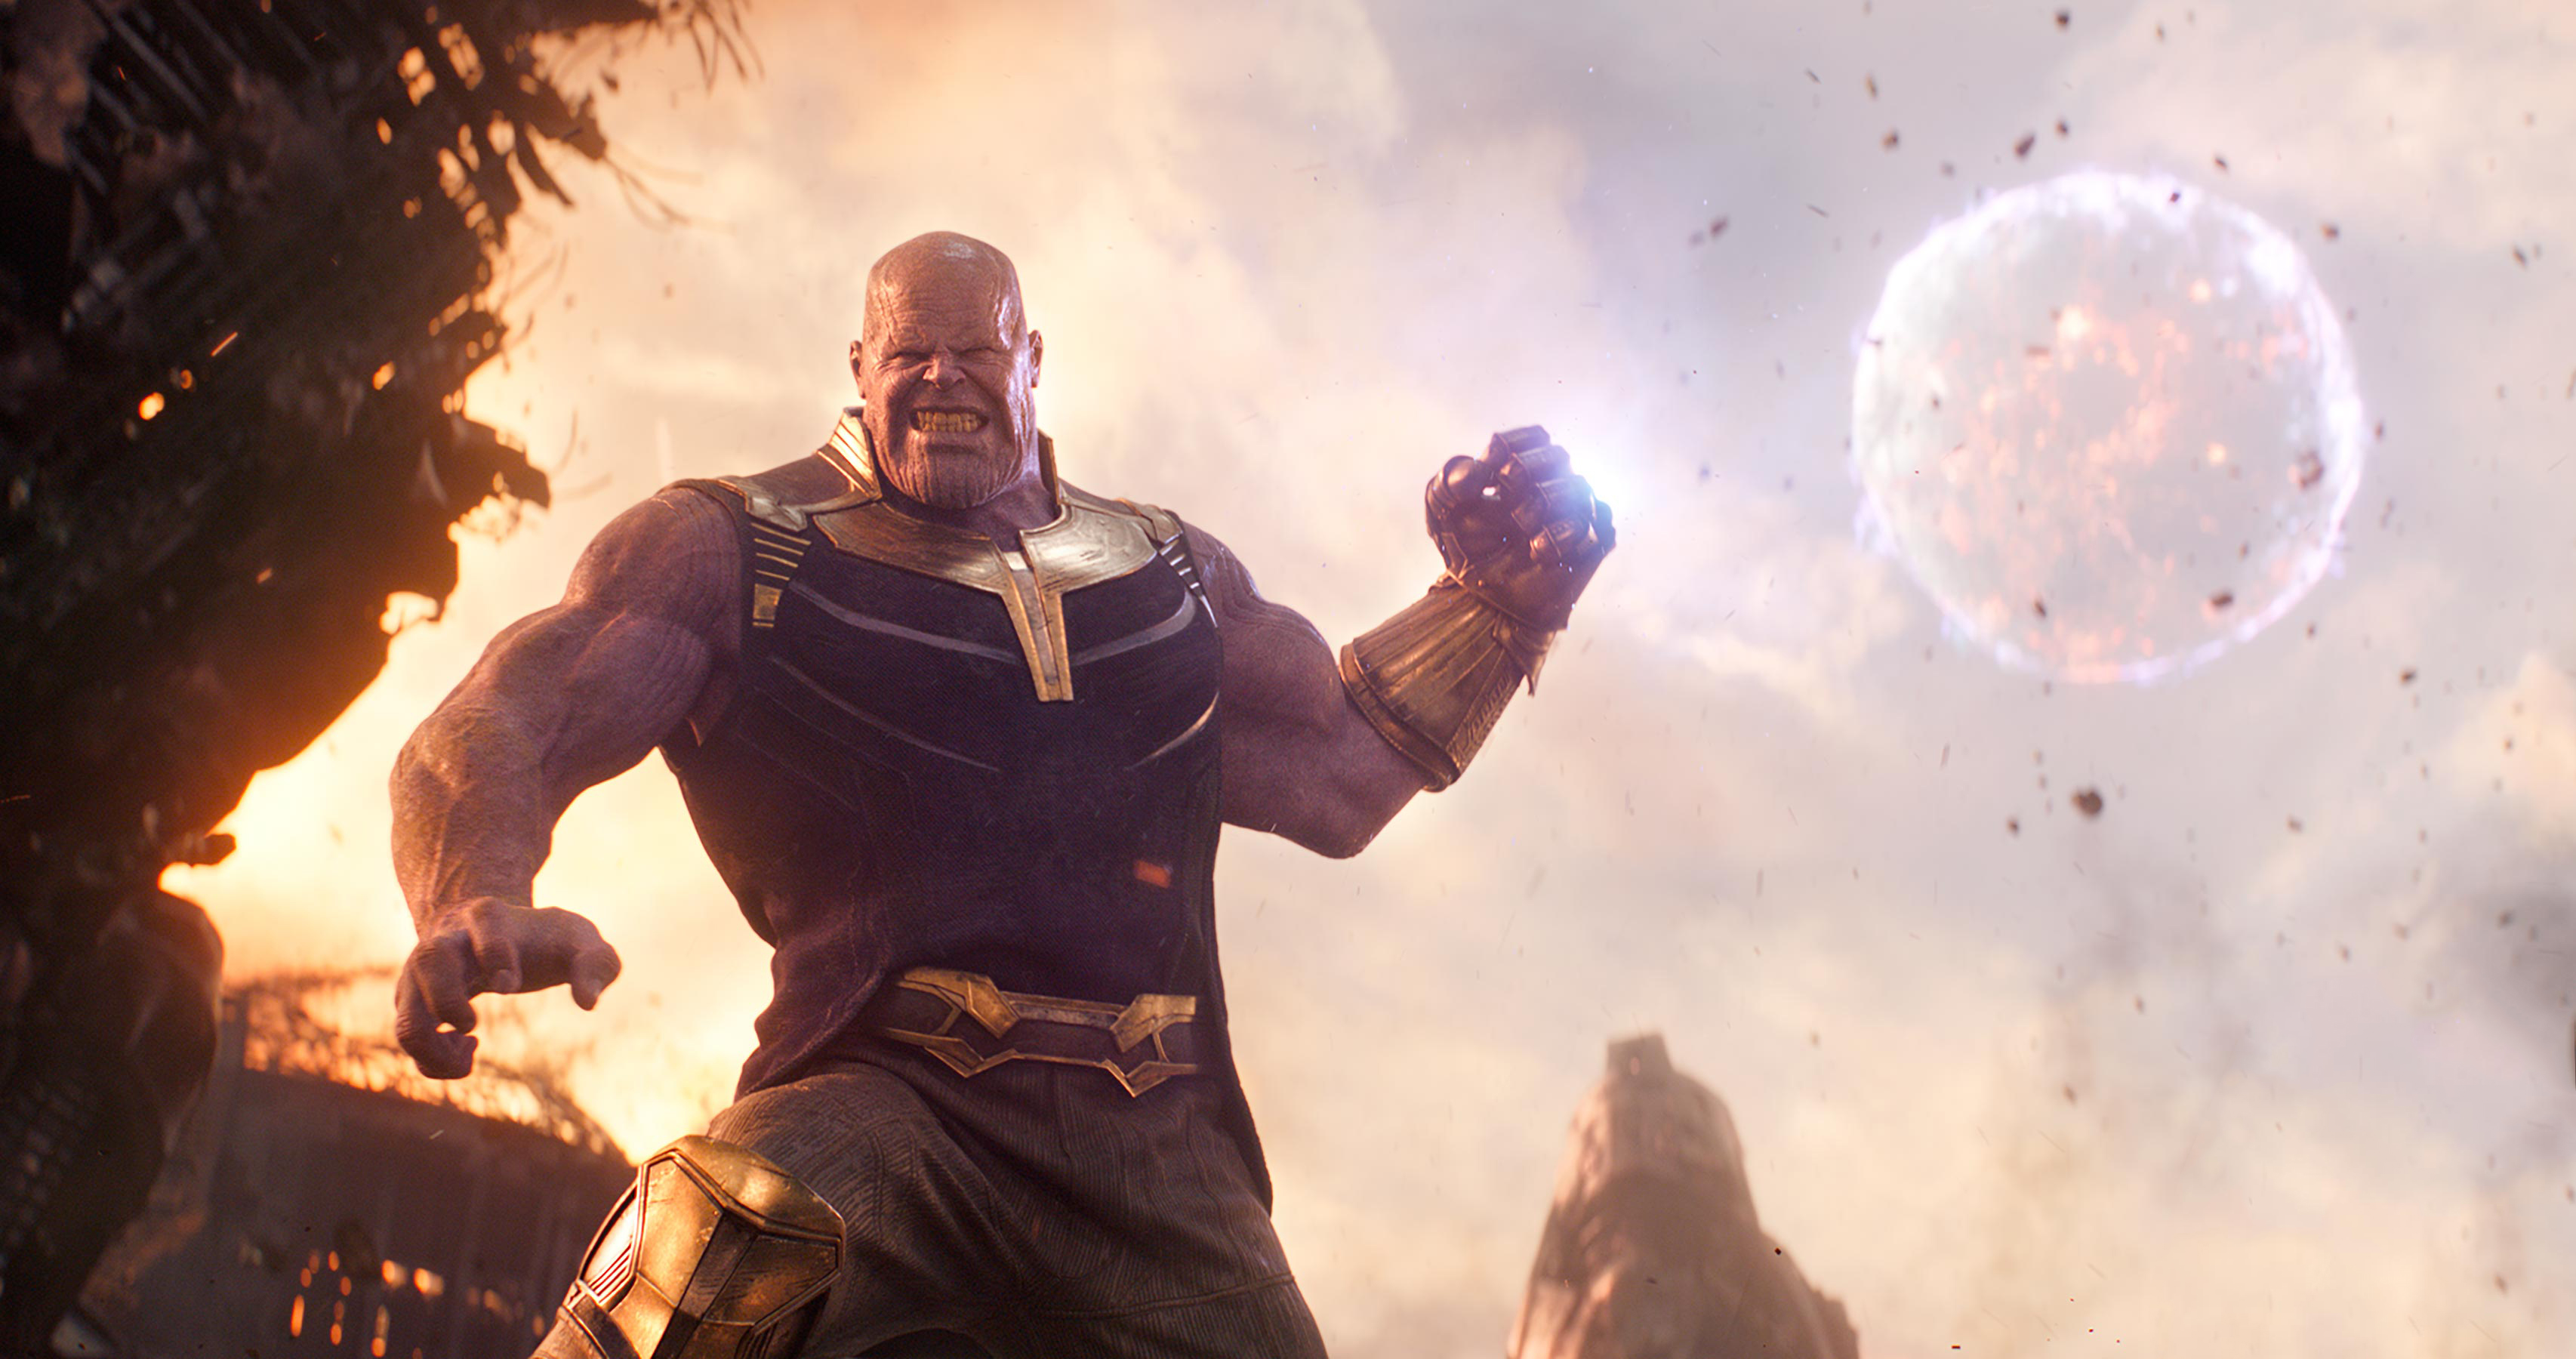 Thanos Hd Wallpaper: Thanos In Avengers Infinity War 2018, HD Movies, 4k